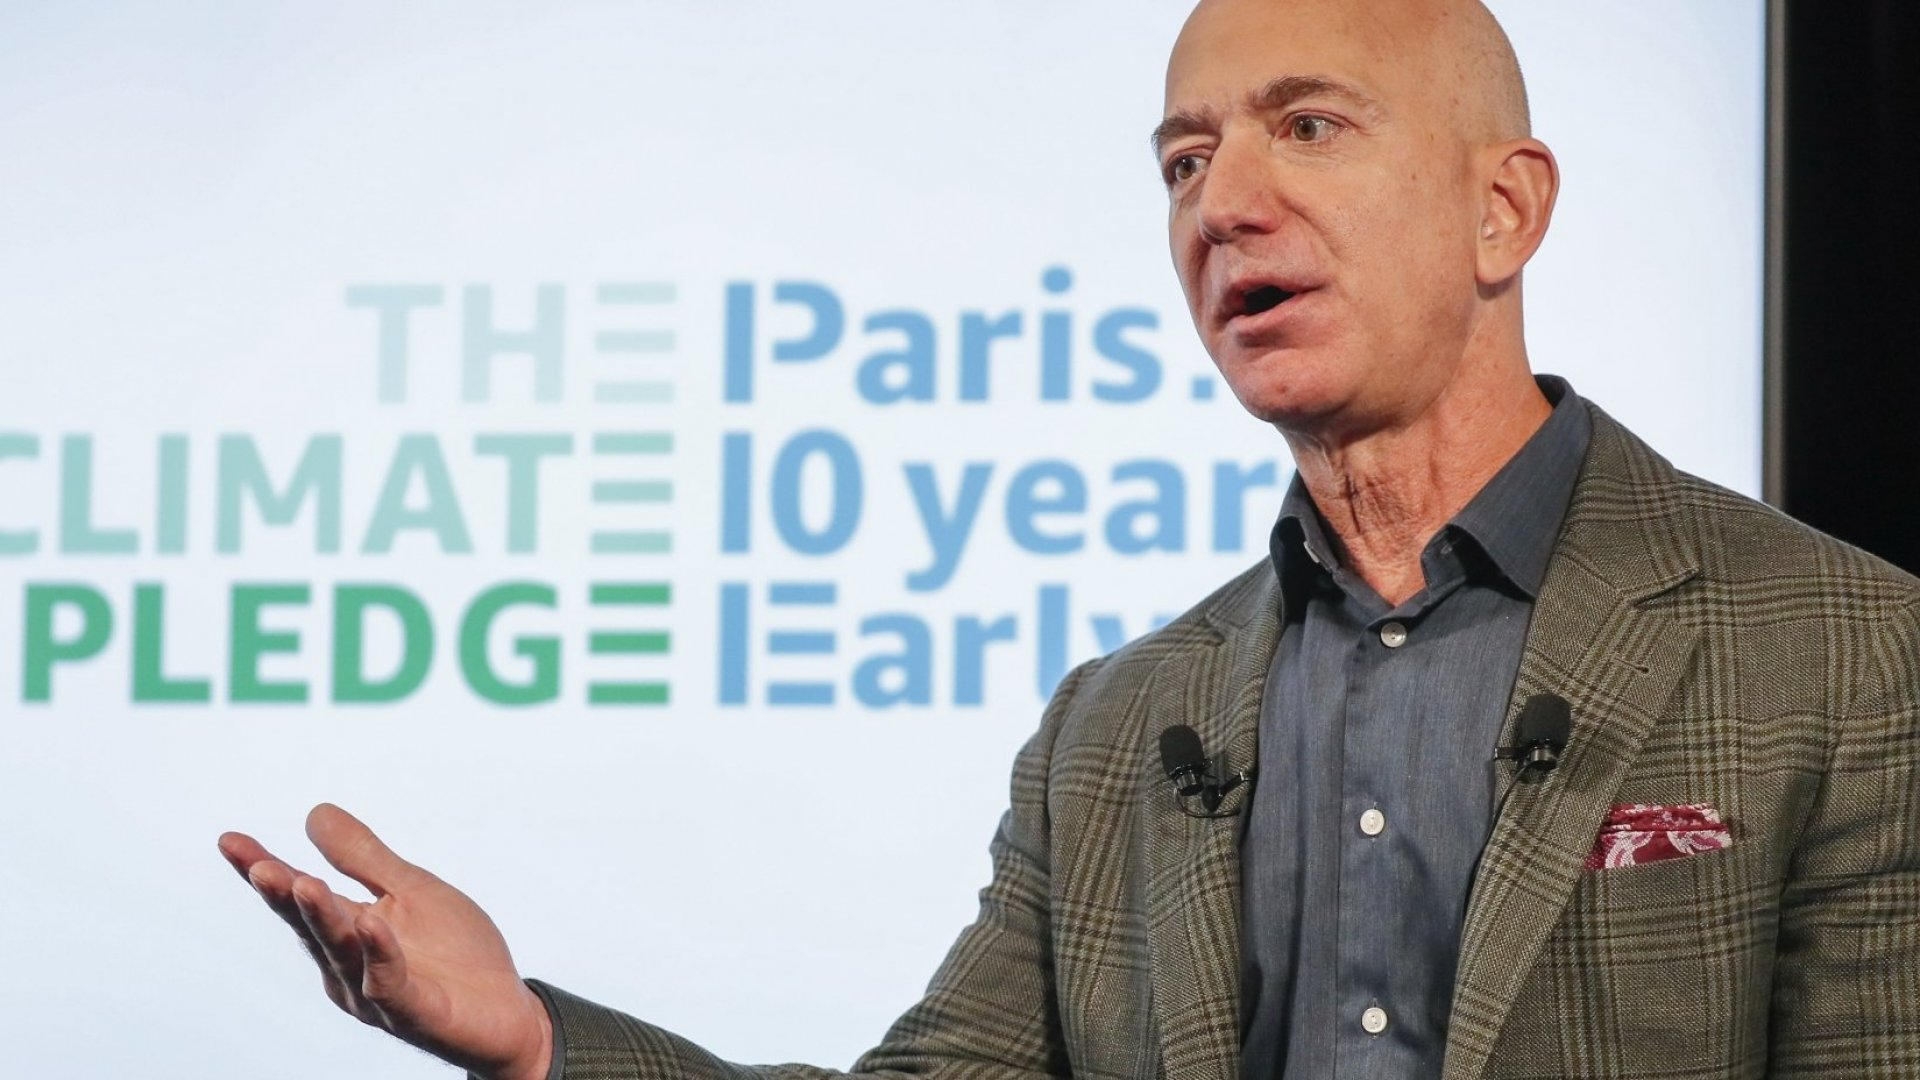 Jeff Bezos, Previously Shamed for His Philanthropy, Pledges 7.7 Percent of His Net Worth to Fight Climate Change